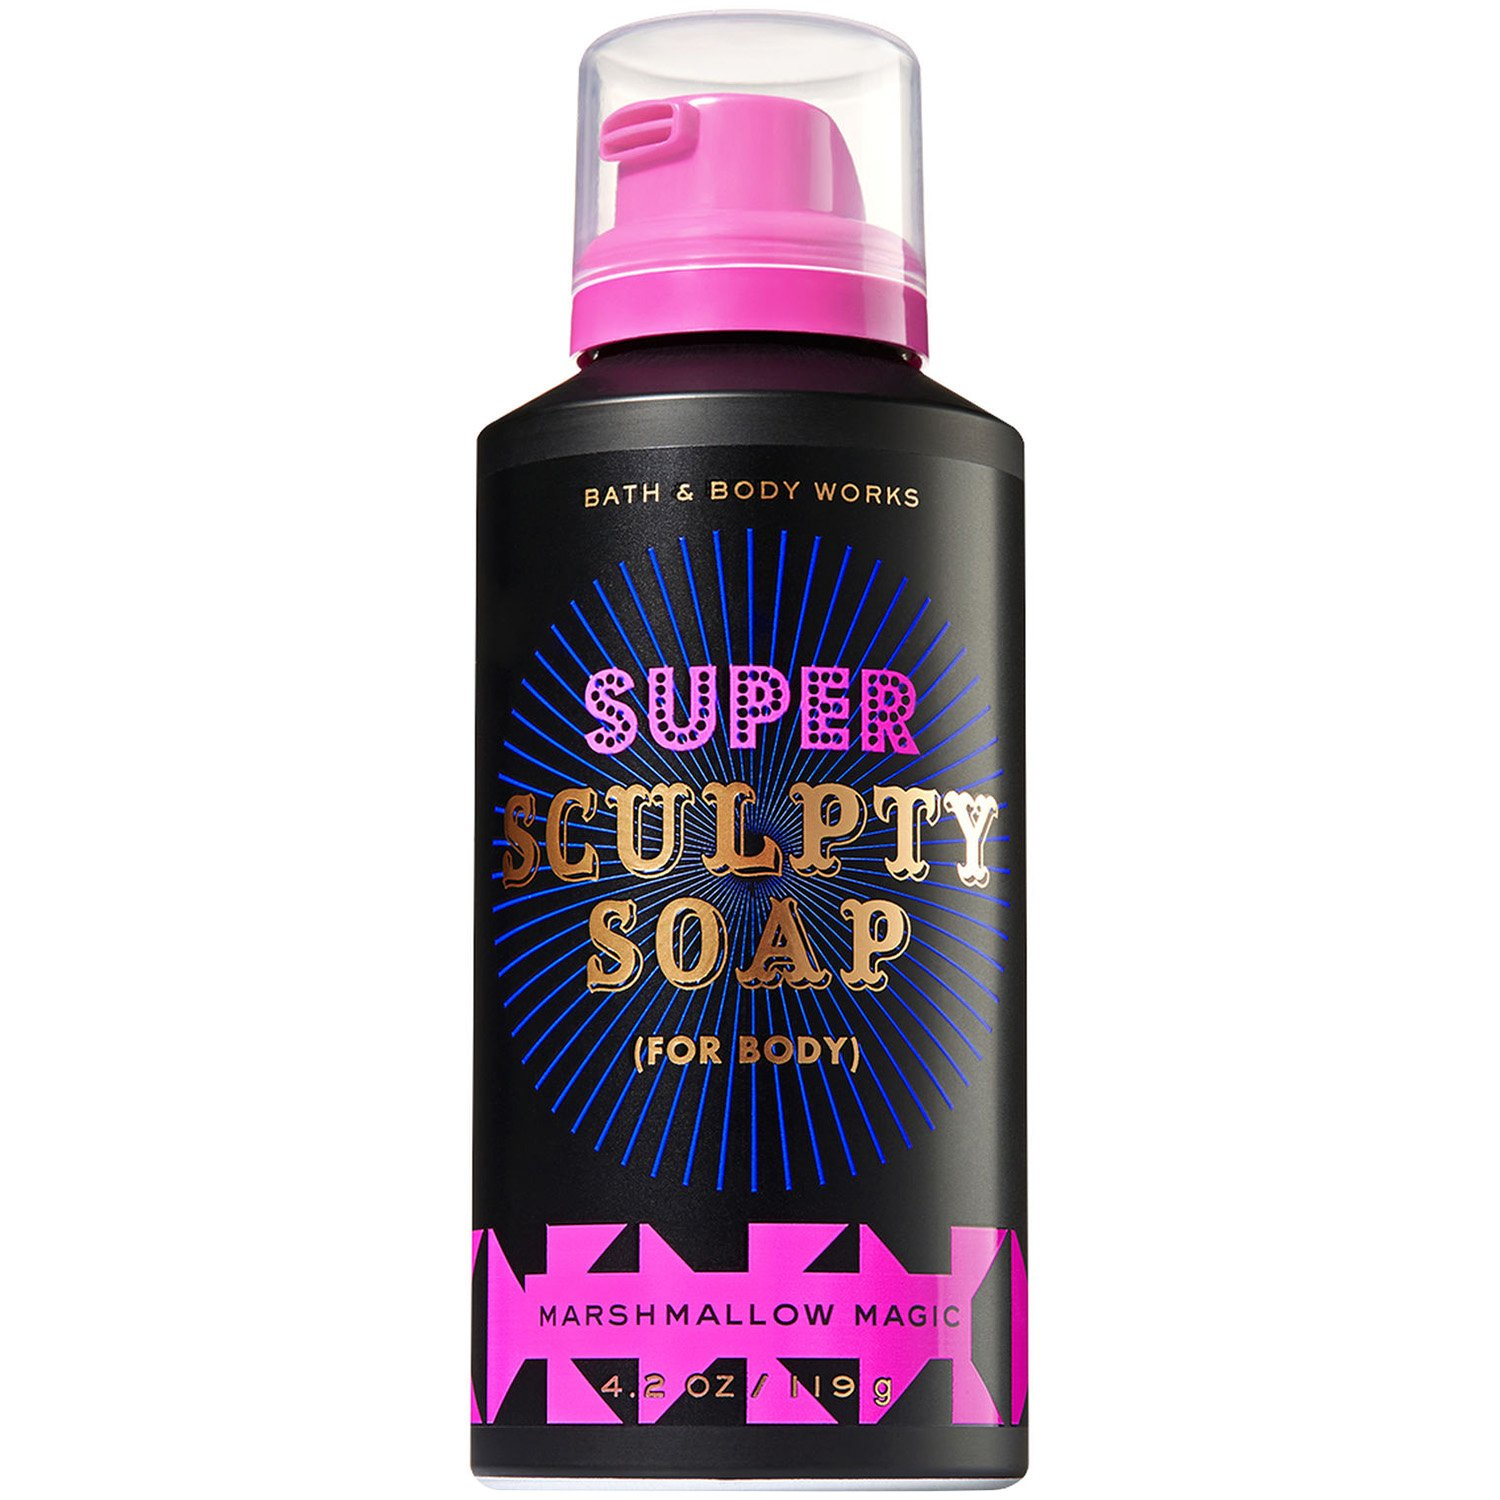 Bath & Body Works Bath & Body Works 4.2 Ounce Super Sculpty Soap (For Body) Marshmallow Magic Scent